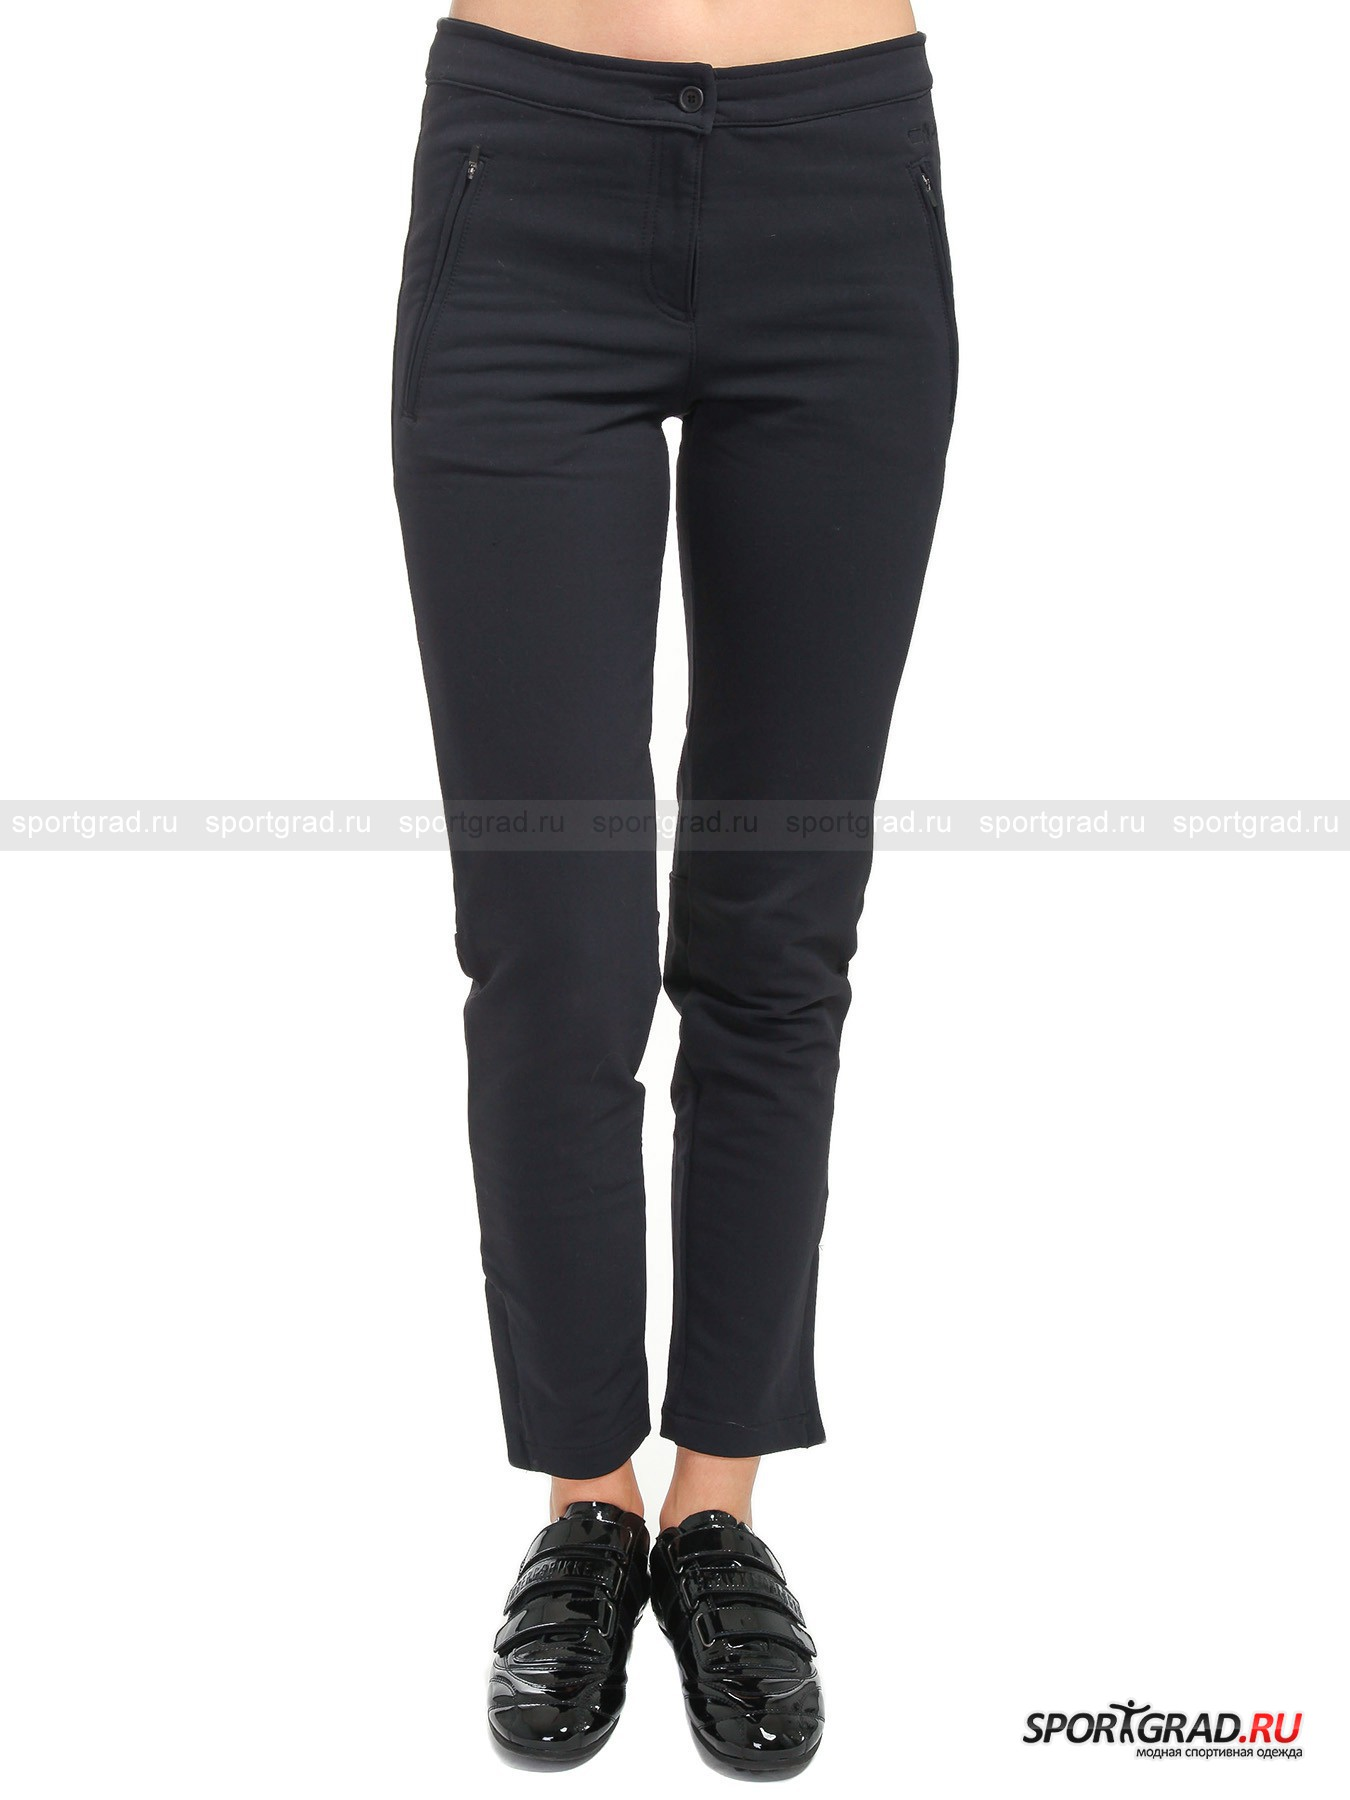 ����� ������� ����������� WOMAN PANT CAMPAGNOLO � �������